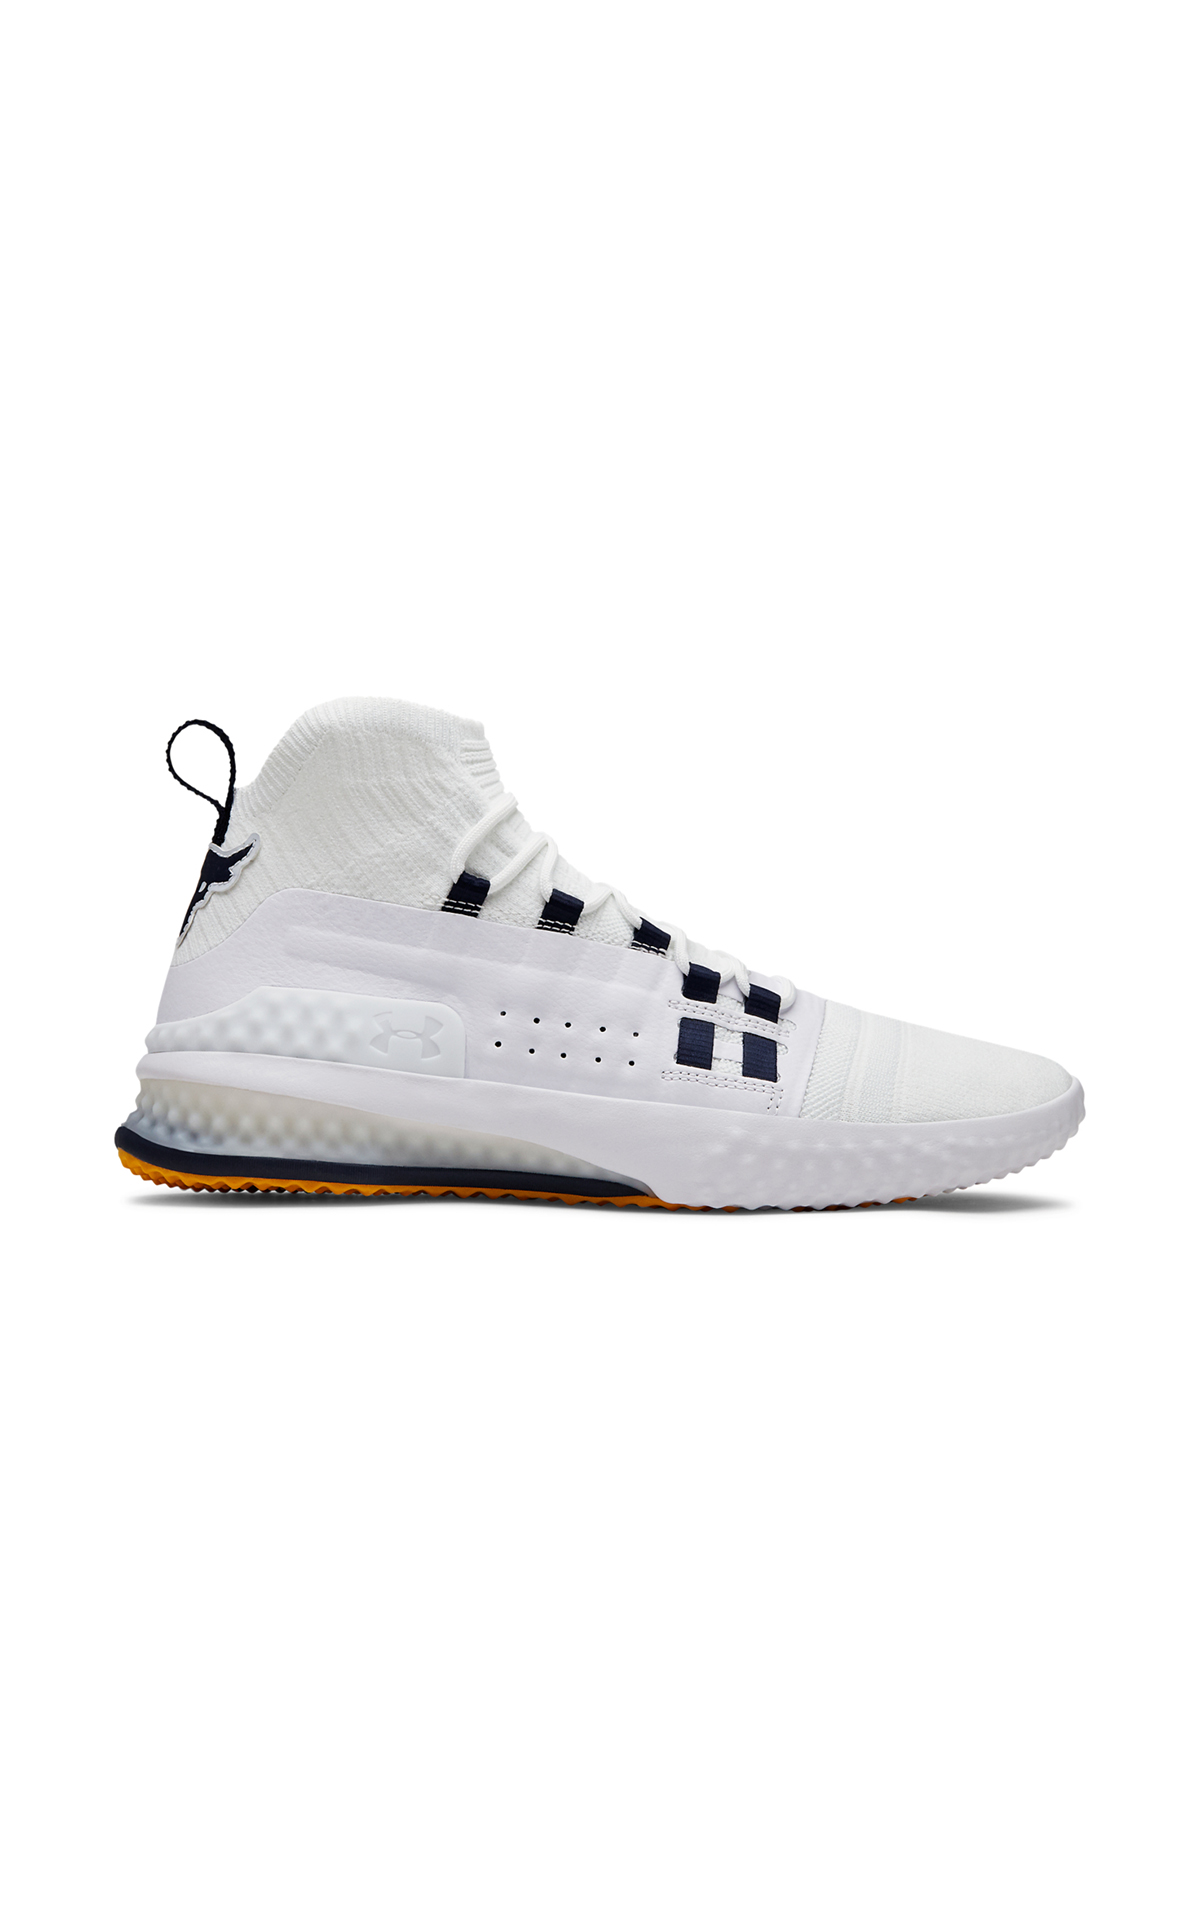 Under Armour Project Rock sneakers at The Bicester Village Shopping Collection